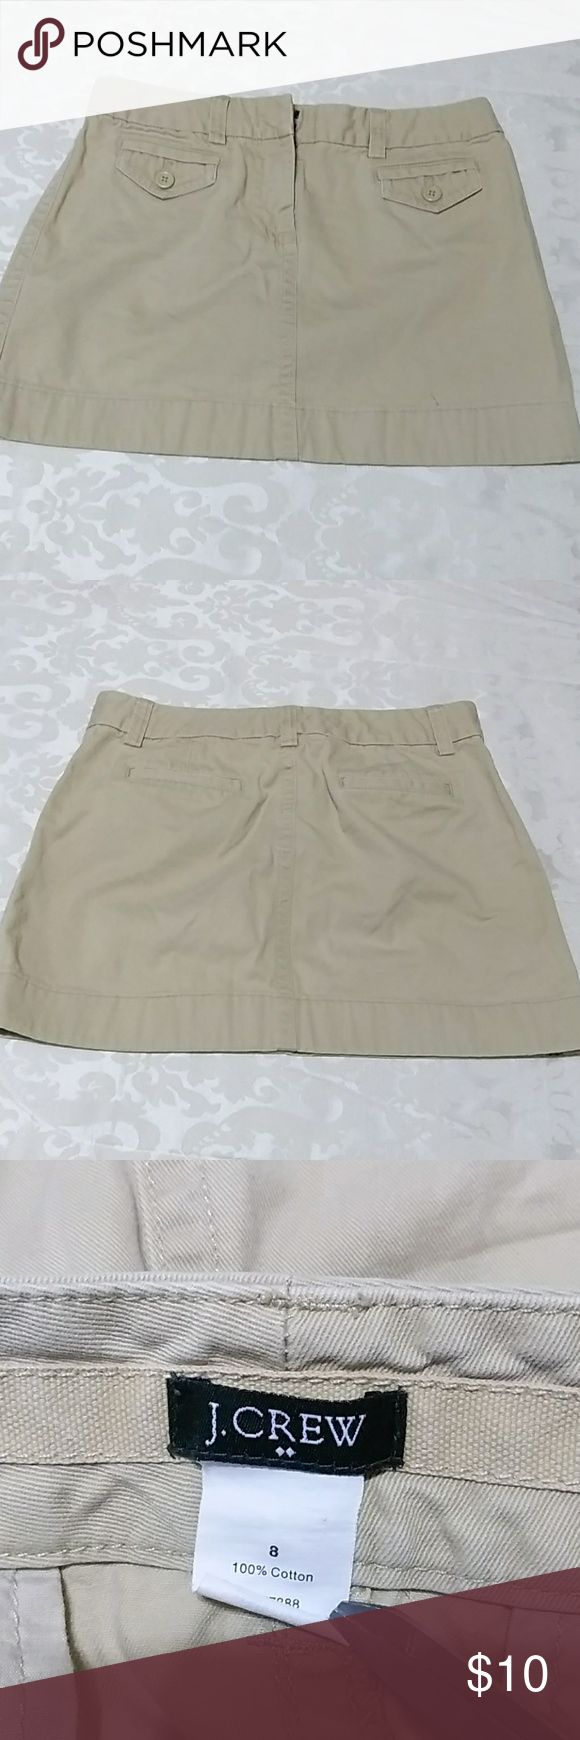 J. Crew mini skirt S-34 Khaki fabric  Tan color Coffee stain before the hem not noticeable see the last picture aside from that everything is Good condition.   Measurements laying flat  Waistline 16 inches Length 14 inches J. Crew Skirts Mini